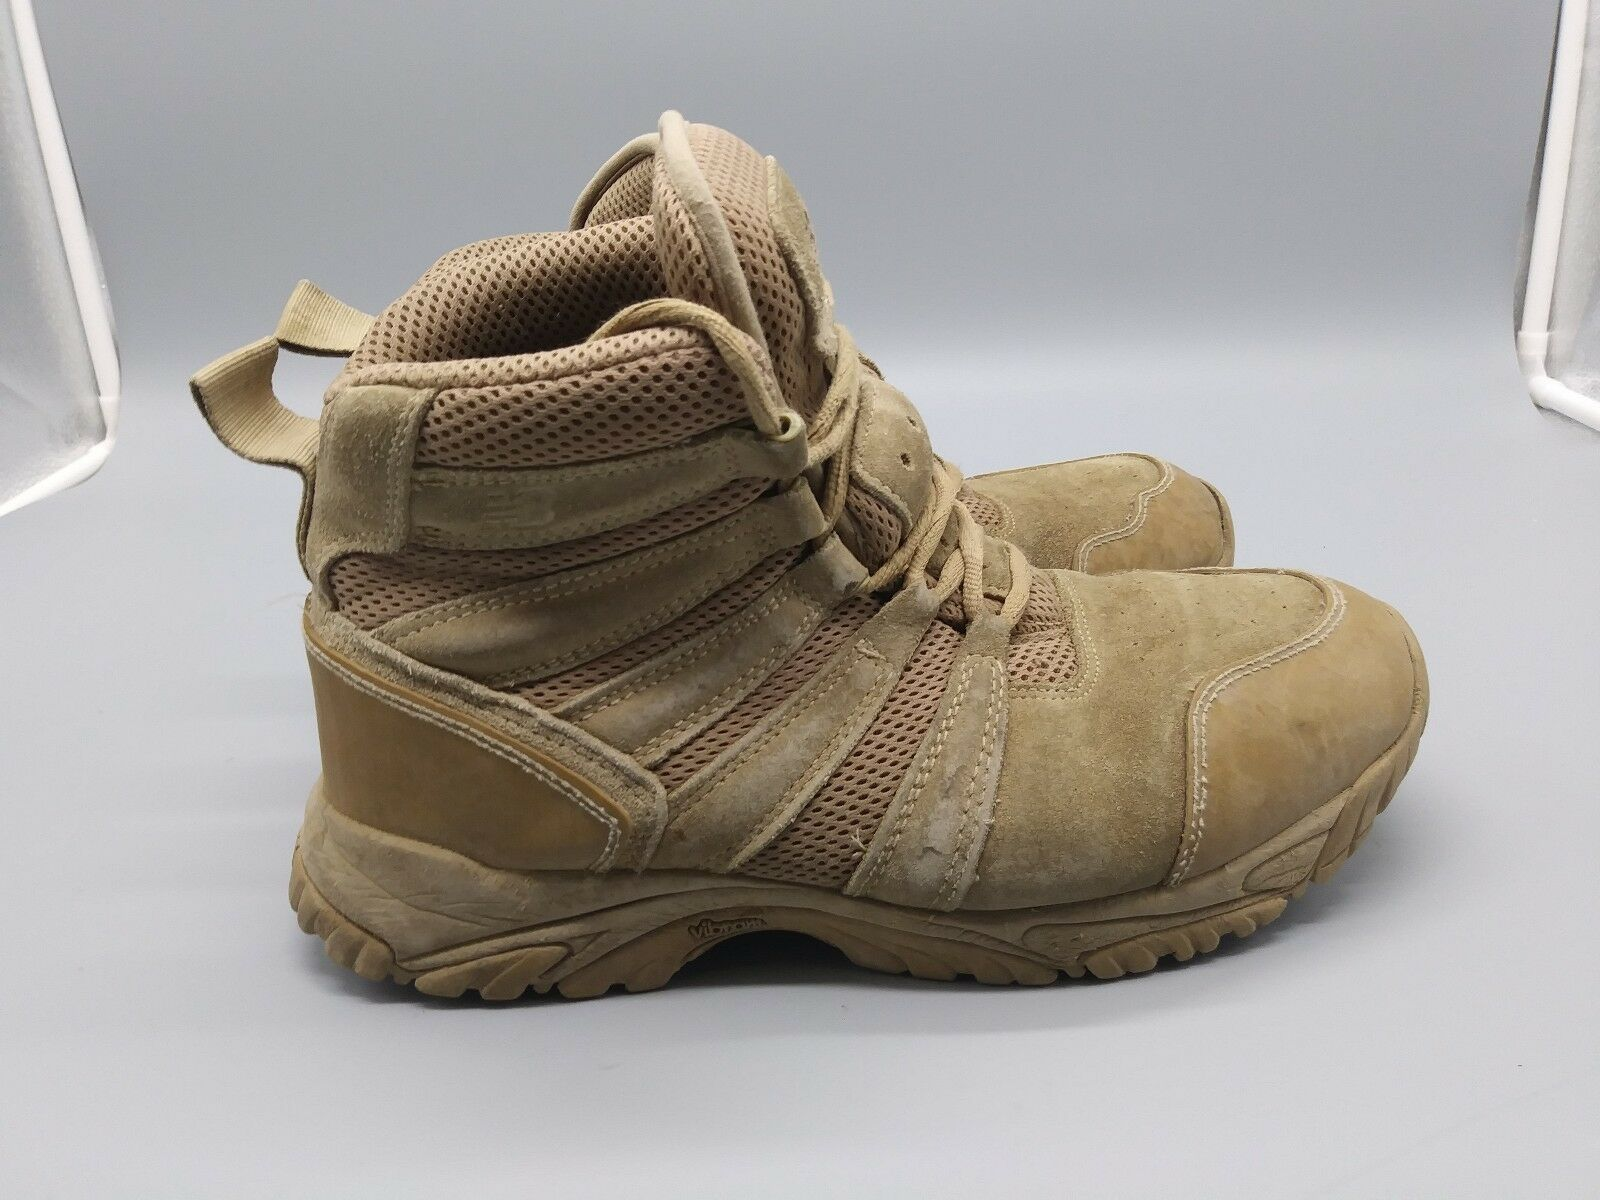 New Balance OTP Tactical Men's Bushmaster 6-Inch OTP Tactical Boot Size 10